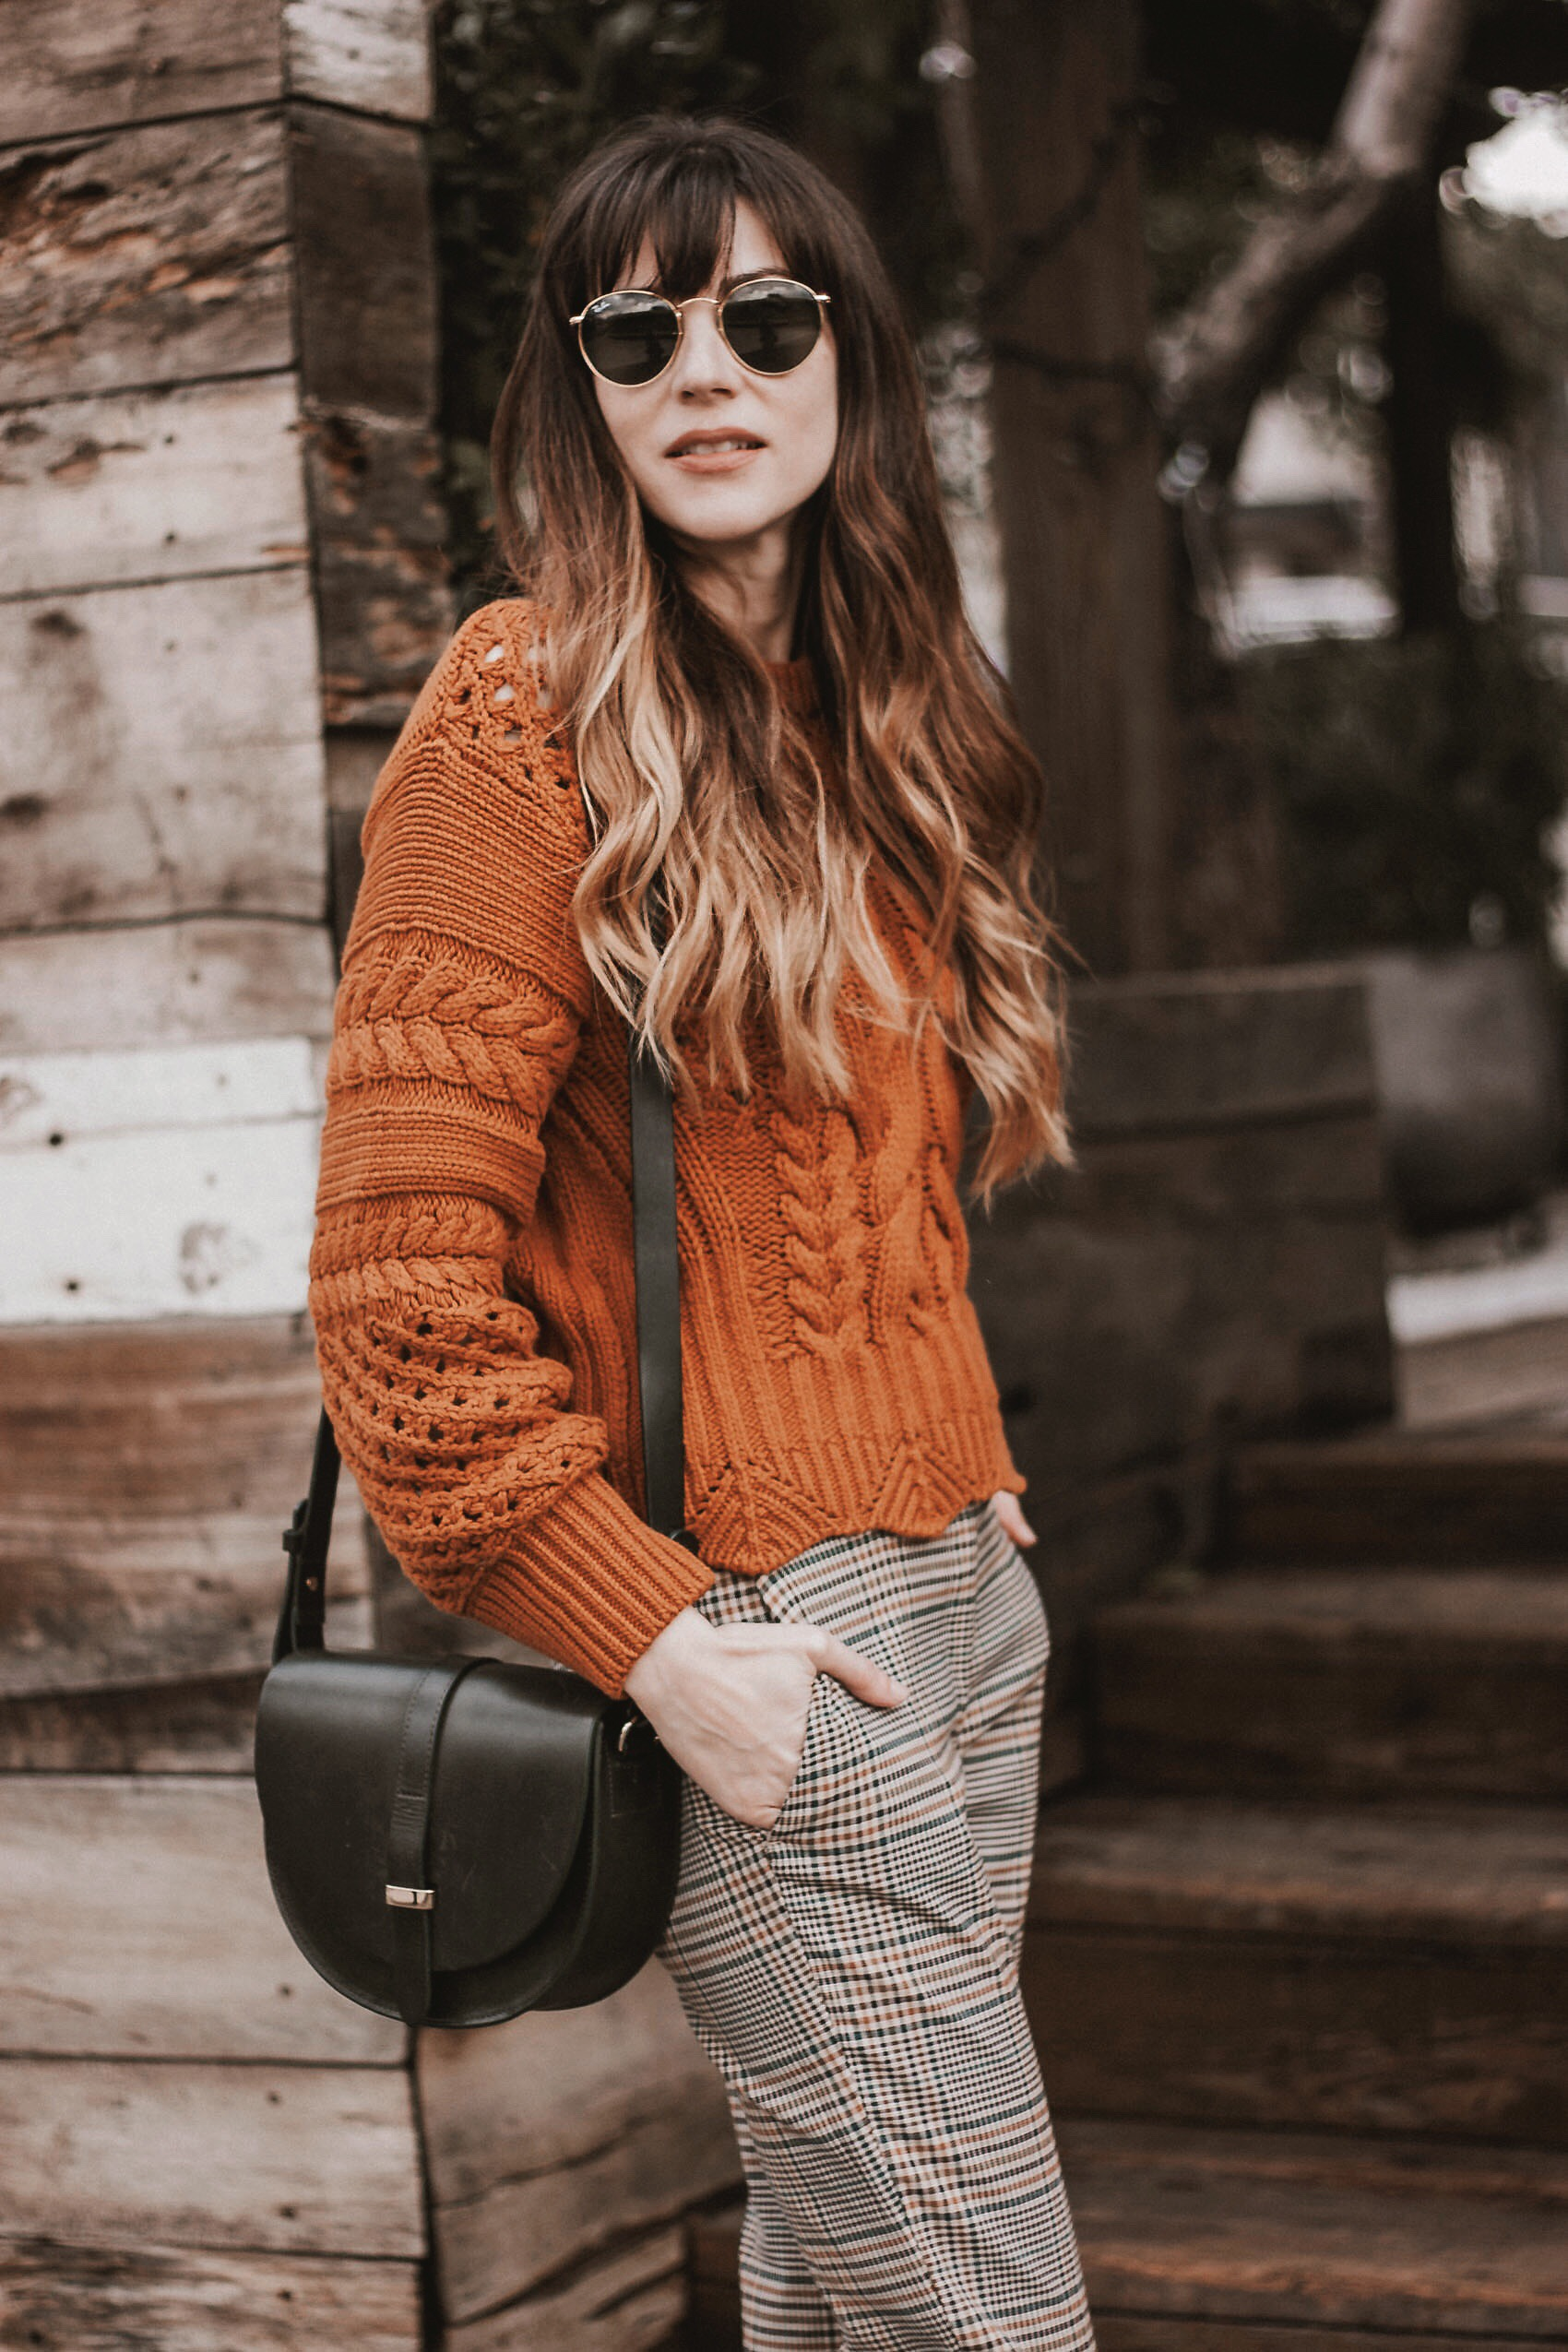 401ffd64a5 ... California Style Blogger wearing  Other Stories Cropped Sweater and  Sezane ...